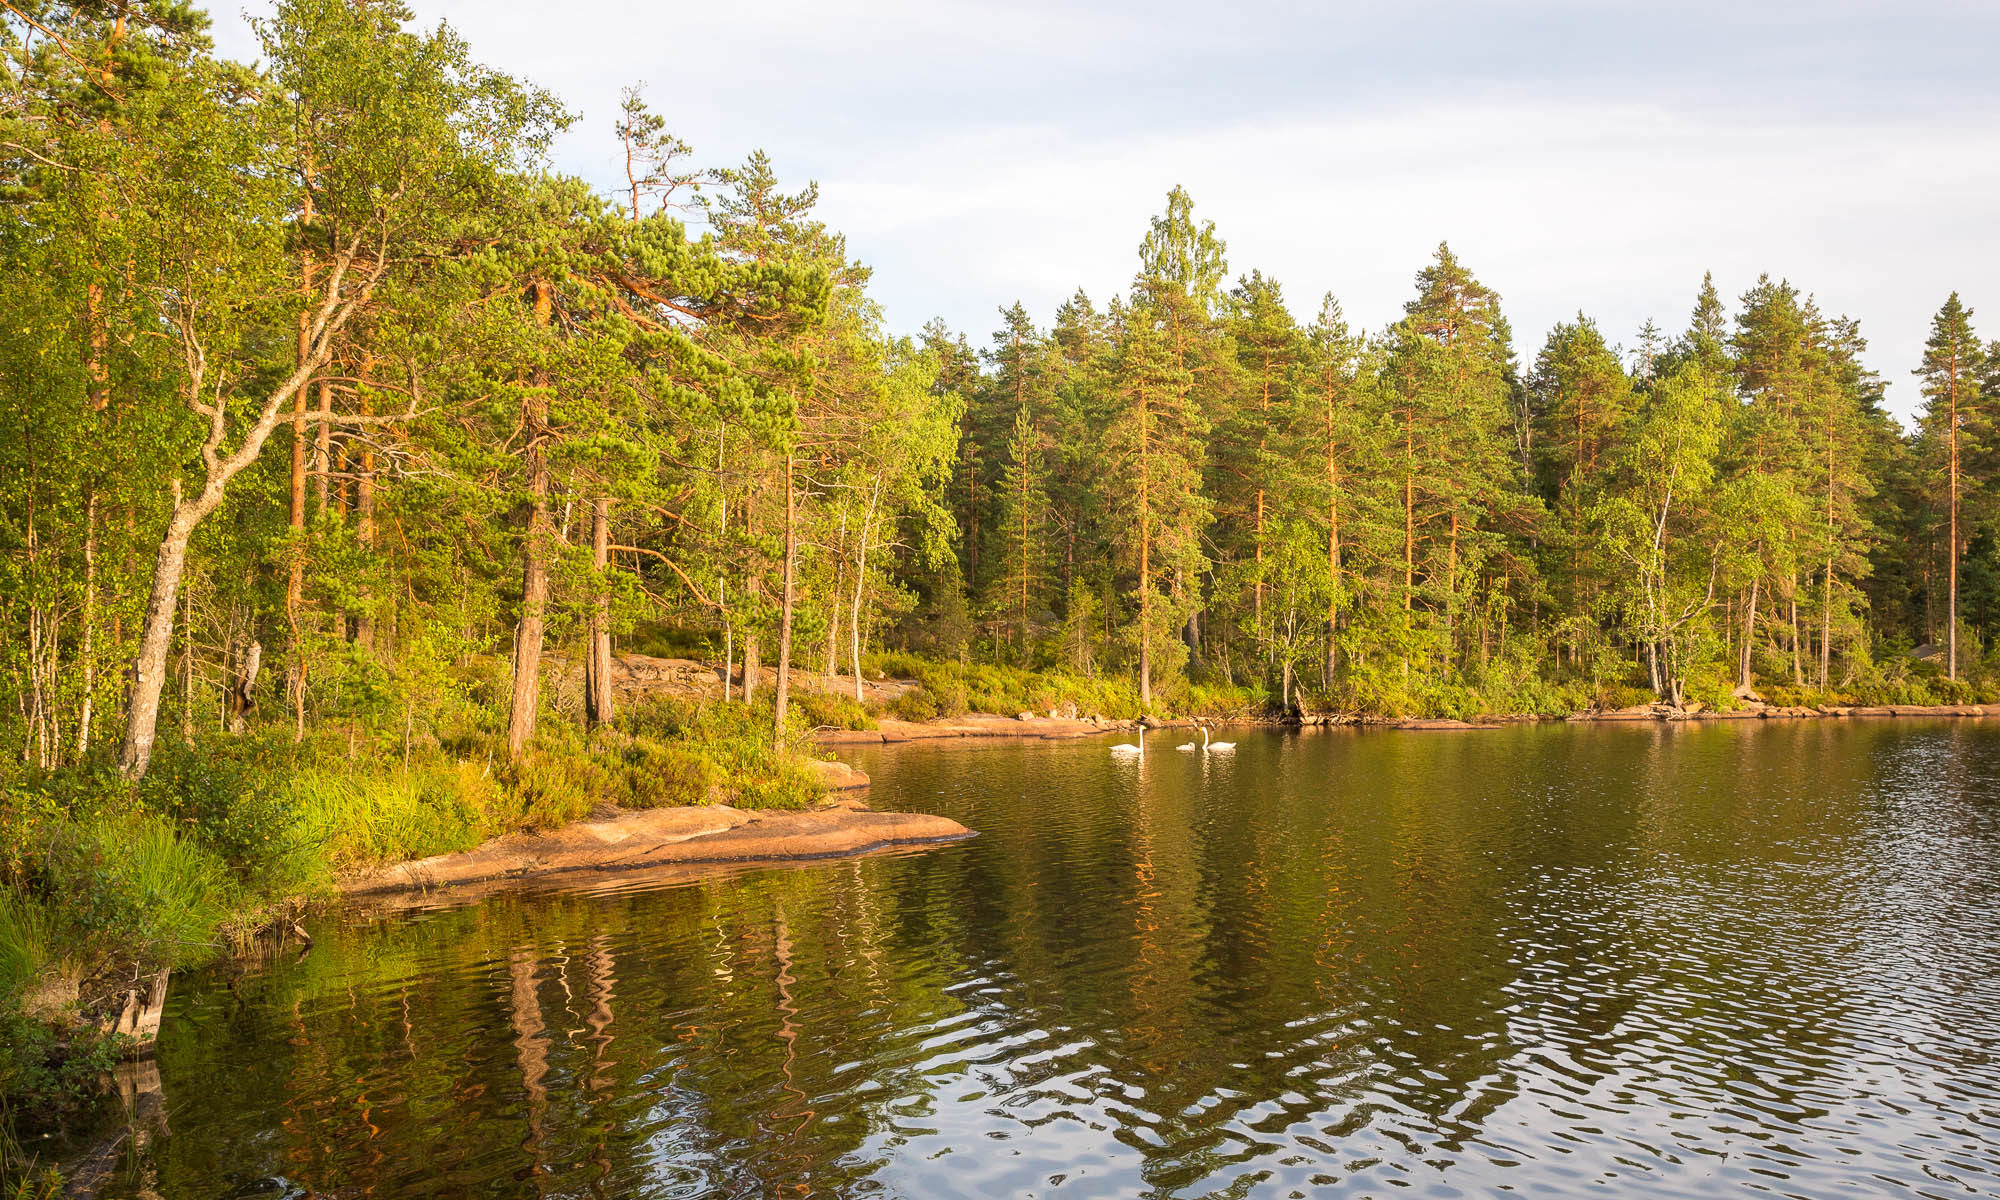 Nuuksio National Park in summer. Finnish national birds, whooper swans, with their small baby in the national park's quiet side. Nature near Helsinki, Finland.